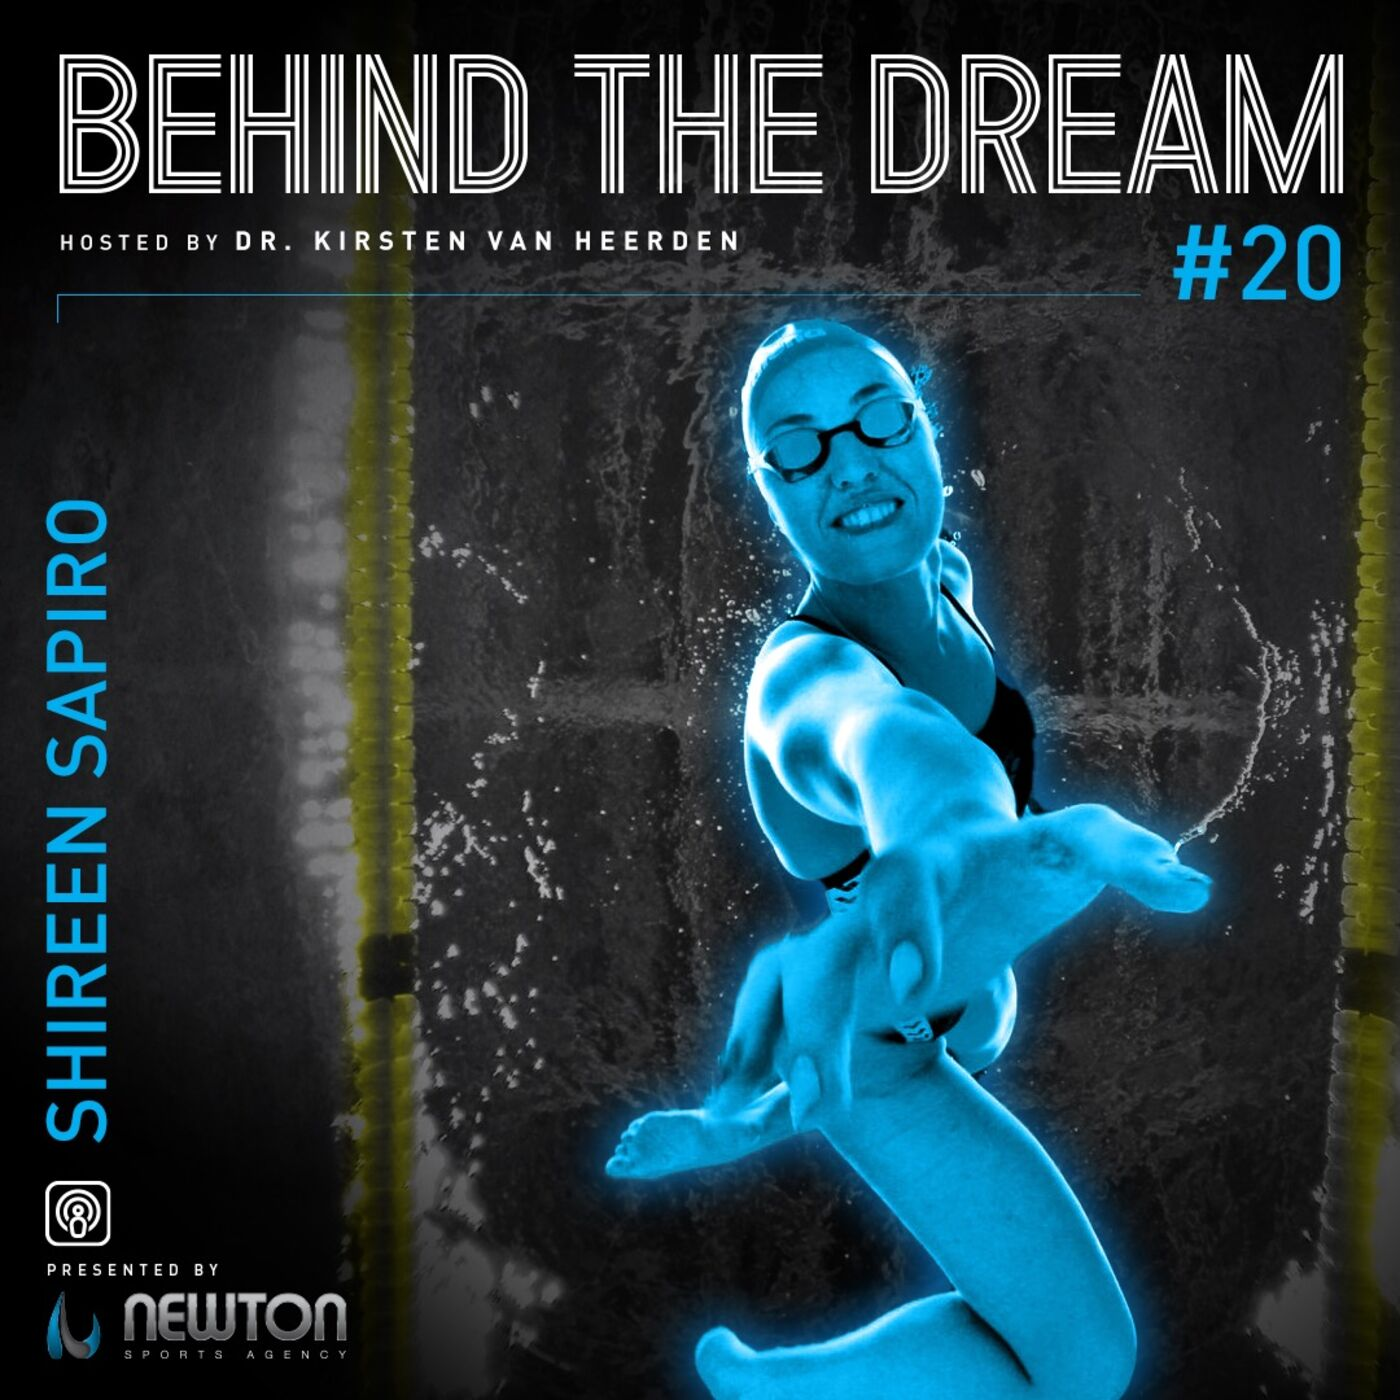 Episode #20: Former World Record holder and Paralympic Gold Medalist Shireen Sapiro talks about the heart break of retirement and finding herself again in life after swimming